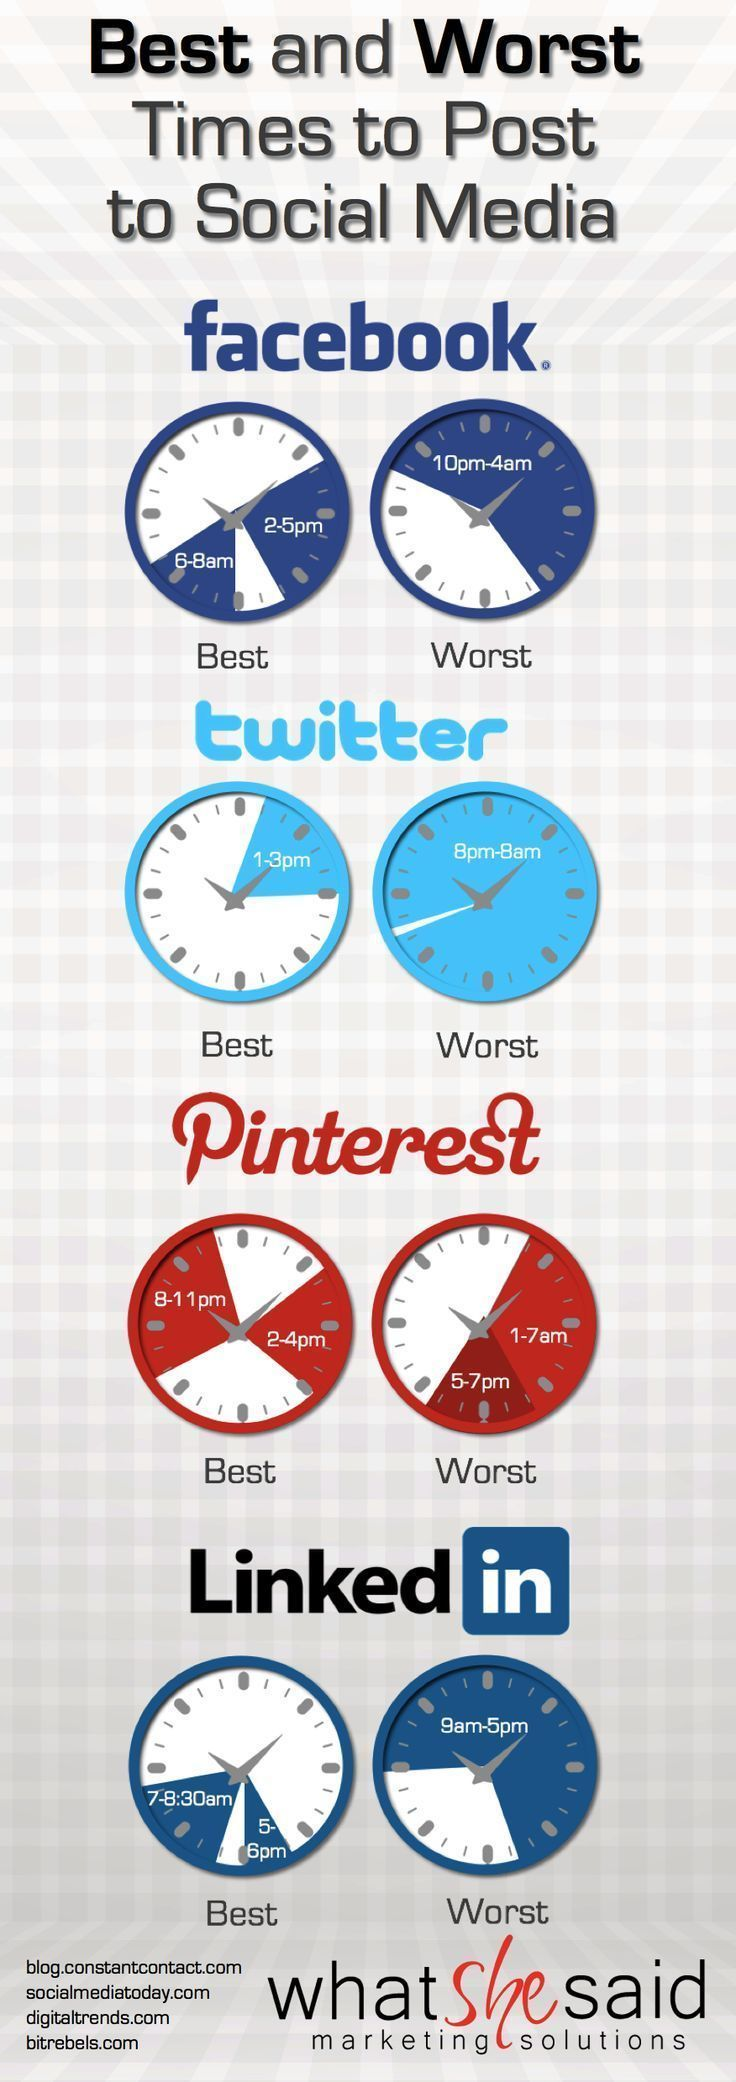 Best and worst times to post to social media - #SocialMedia #Infographic